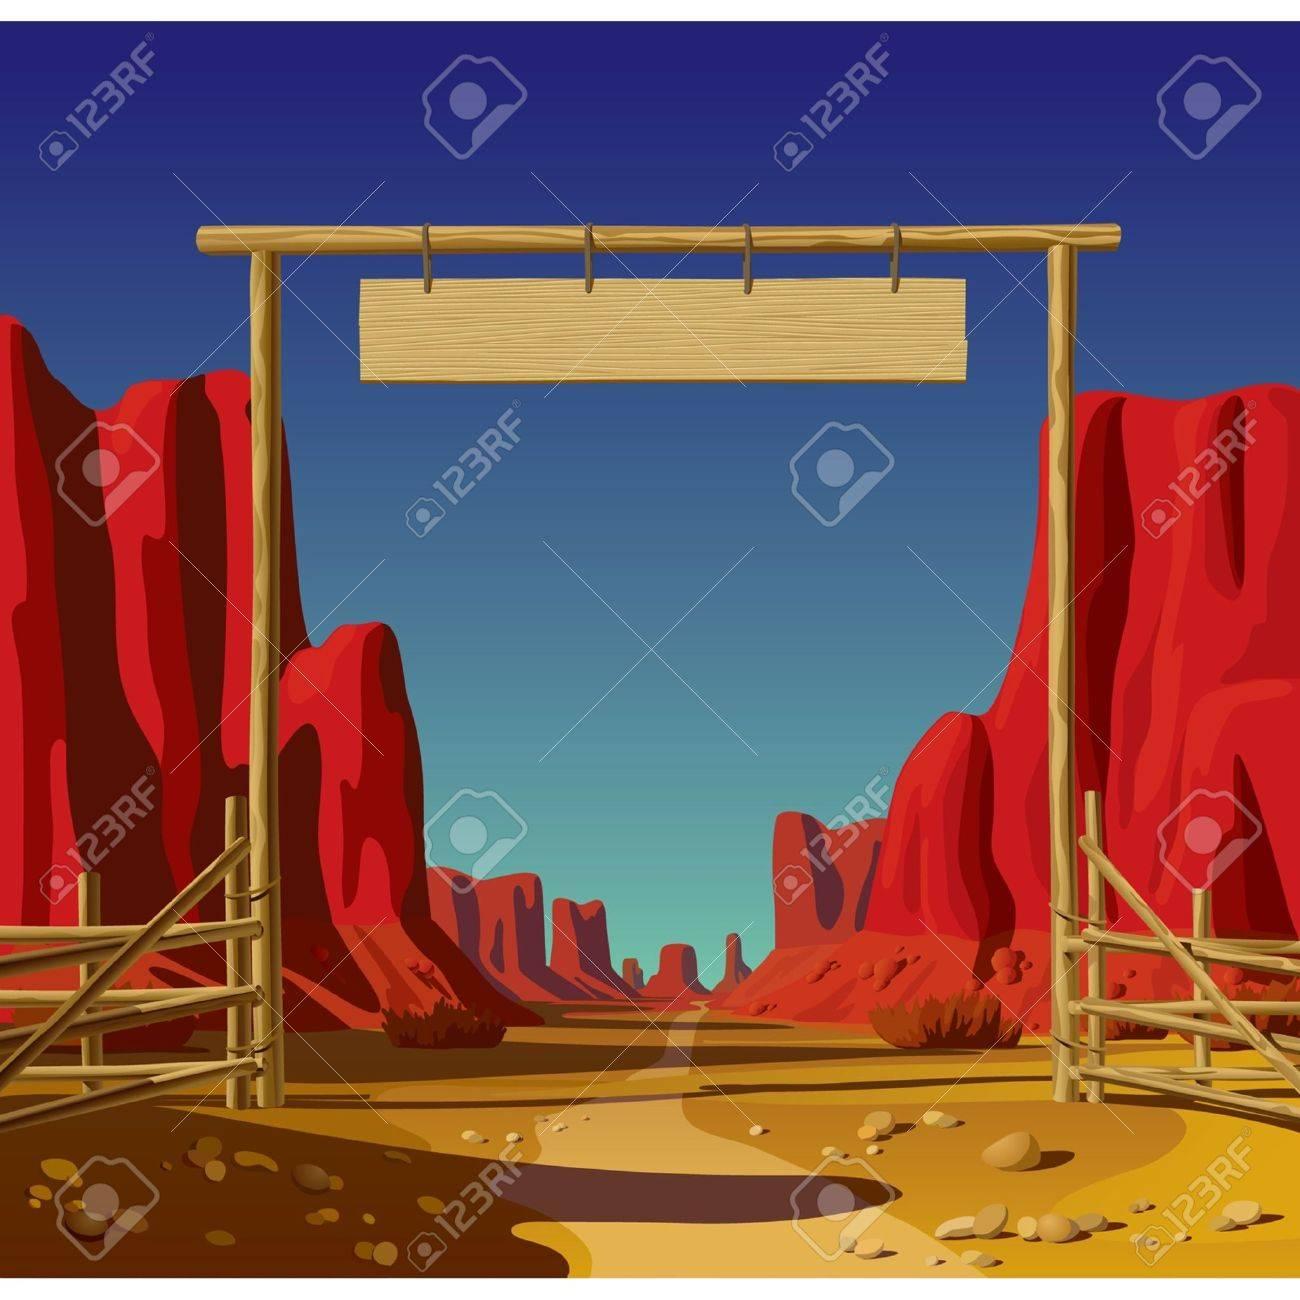 Vector illustration of a farm gate in the Wild West Stock Vector - 16415420